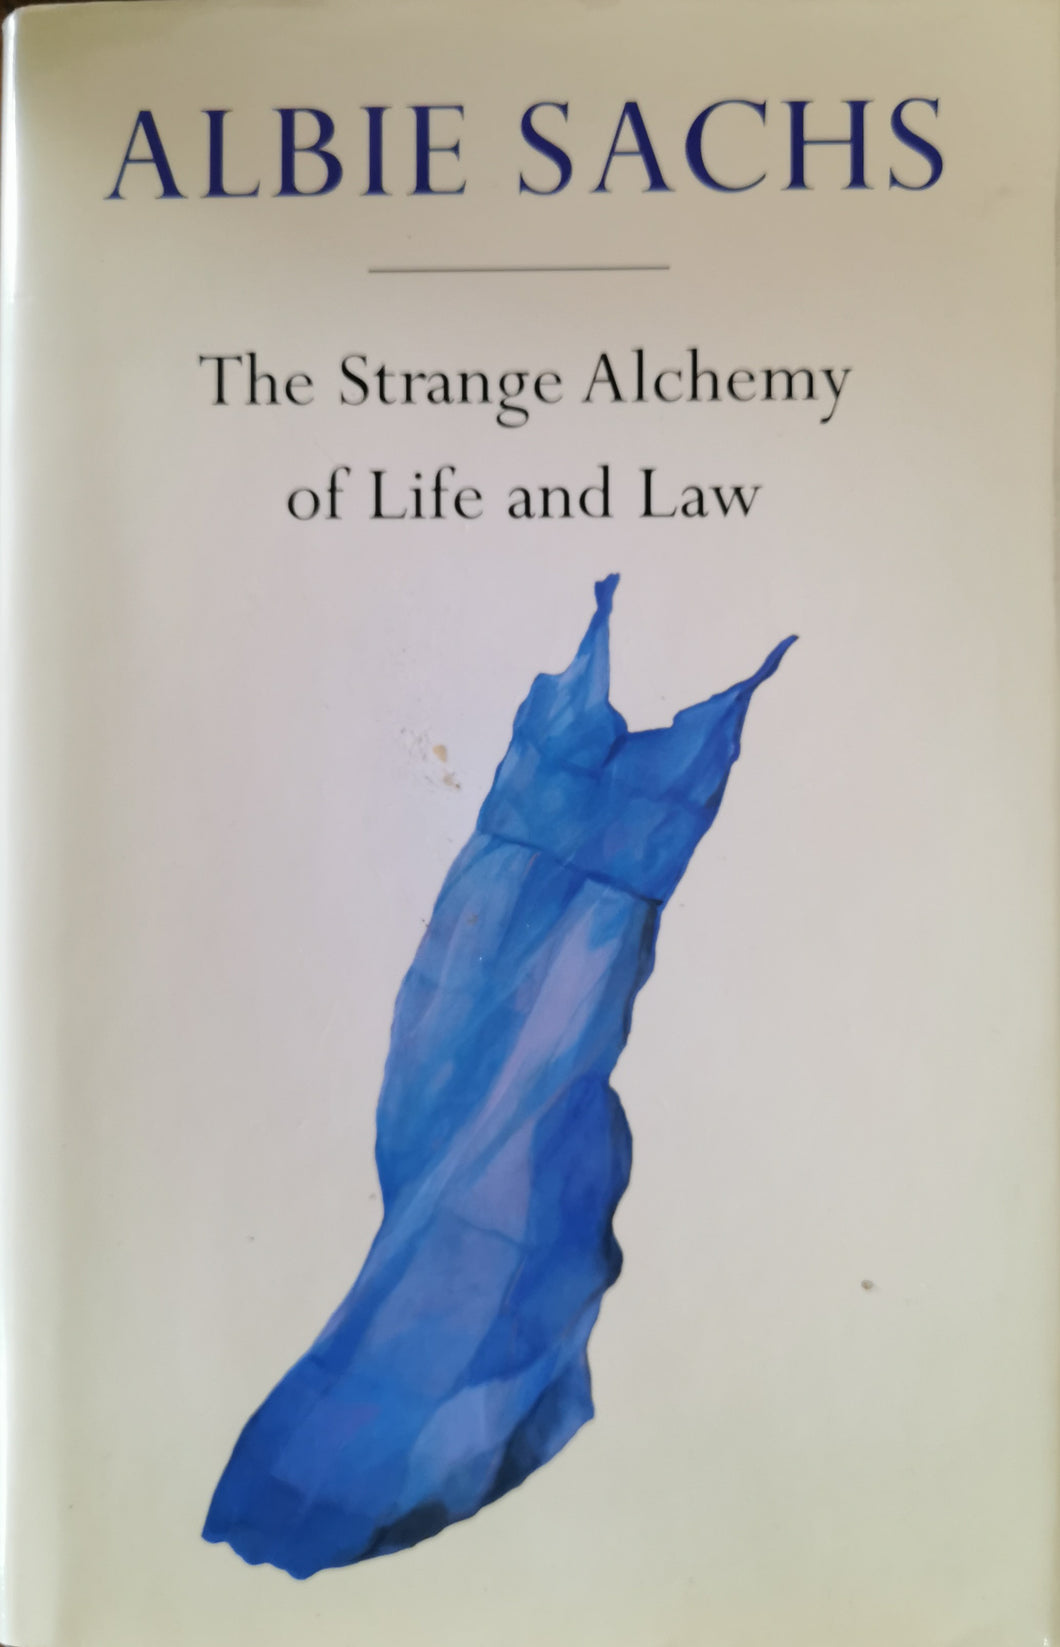 Albie Sachs - The Strange Alchemy of Life and Law (Signed)